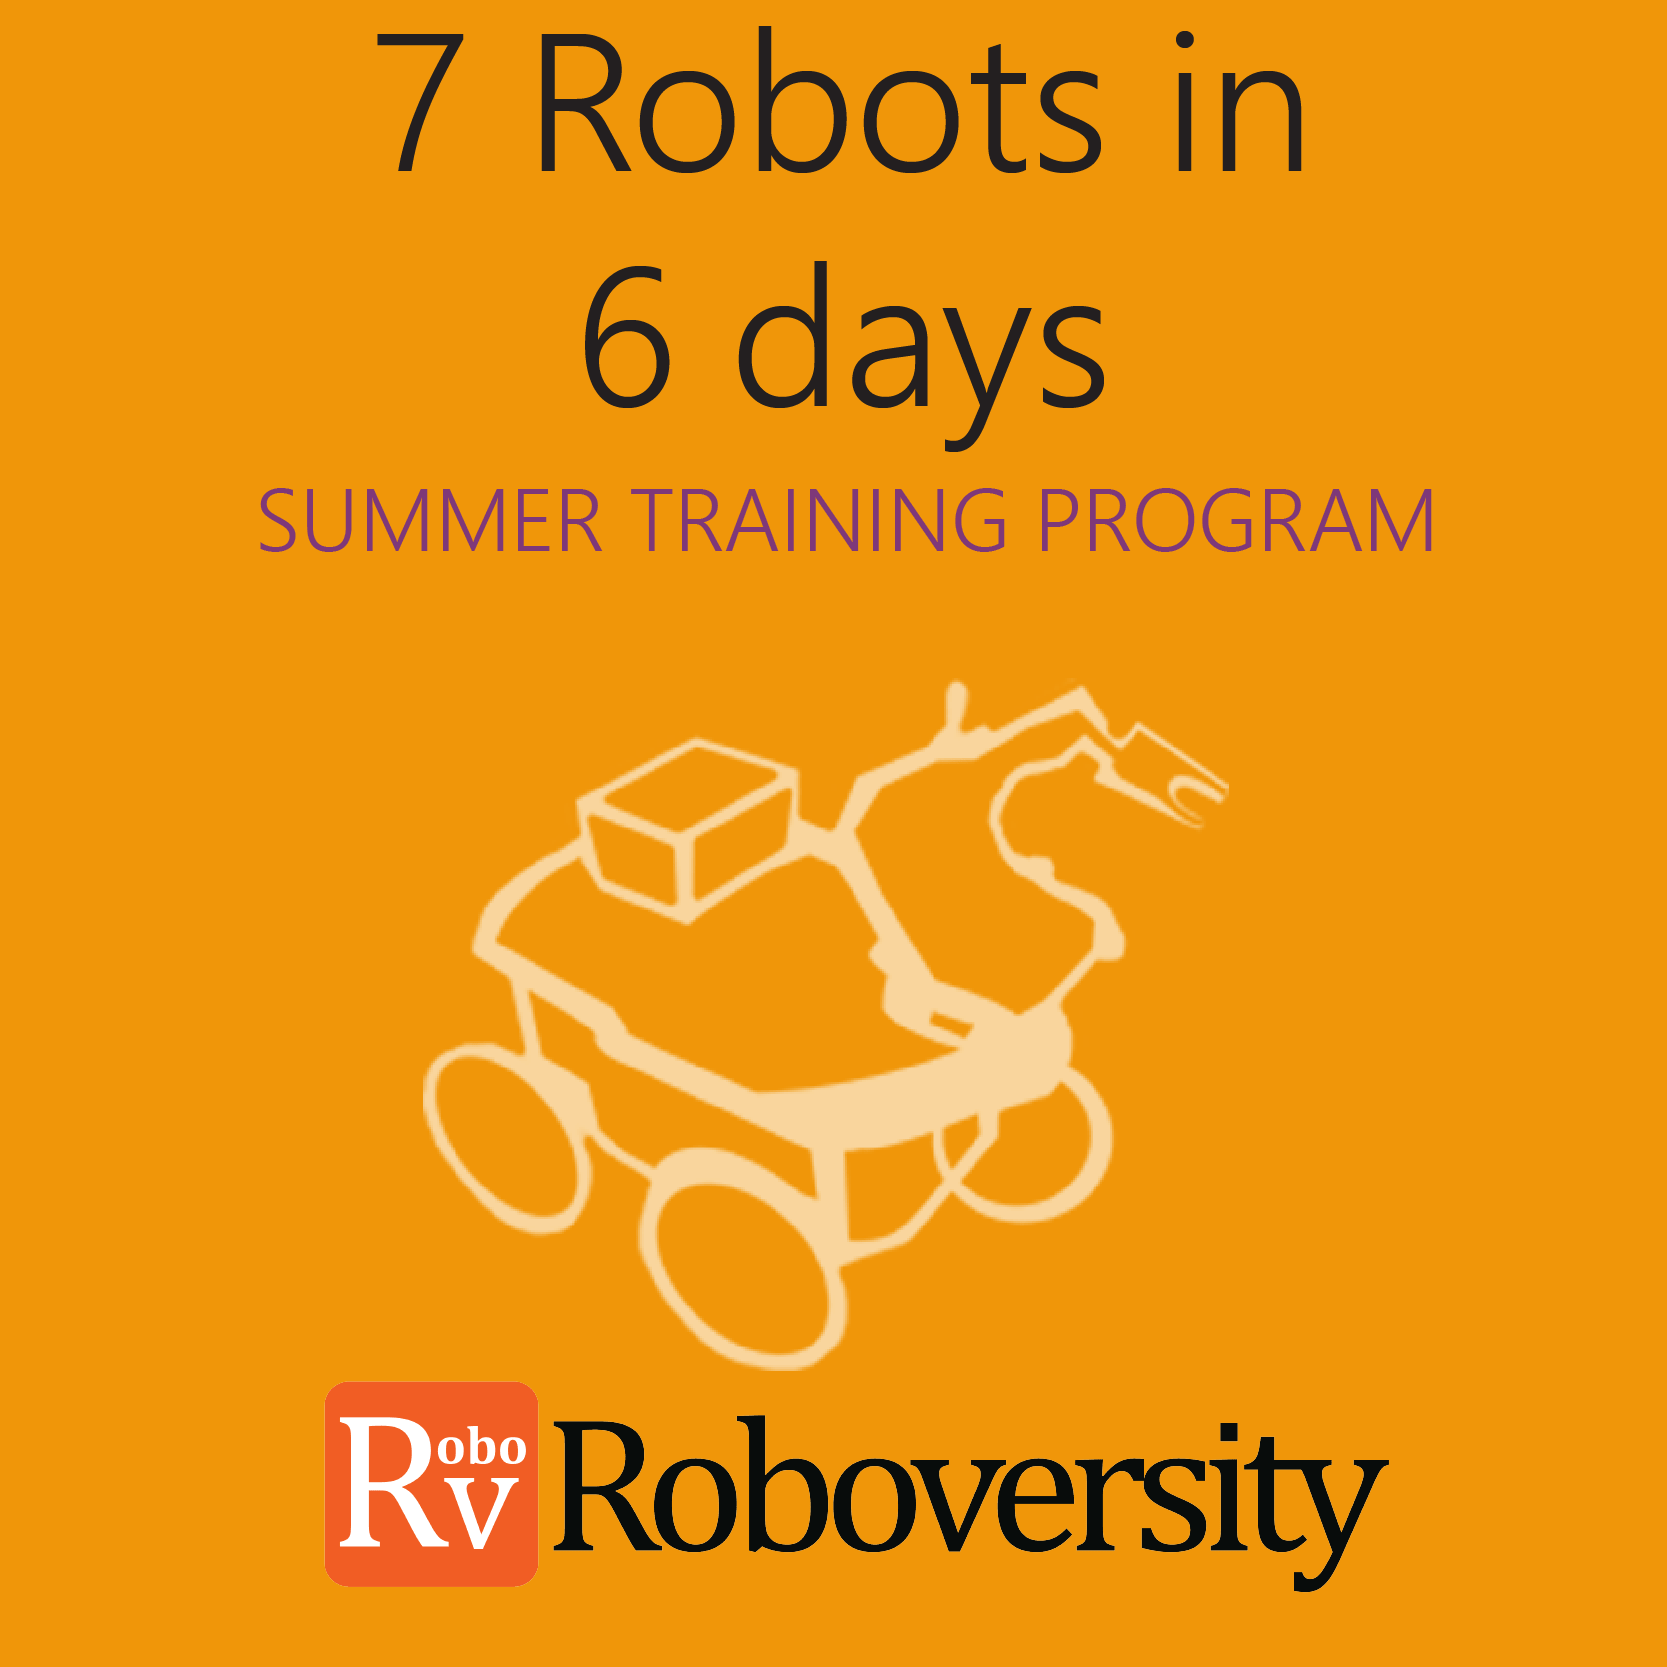 Summer Training Program in Robotics - 7 Robots in 6 Days  at Skyfi Labs Center, Gateforum, Vishal Mega Mart, VIP Road Workshop